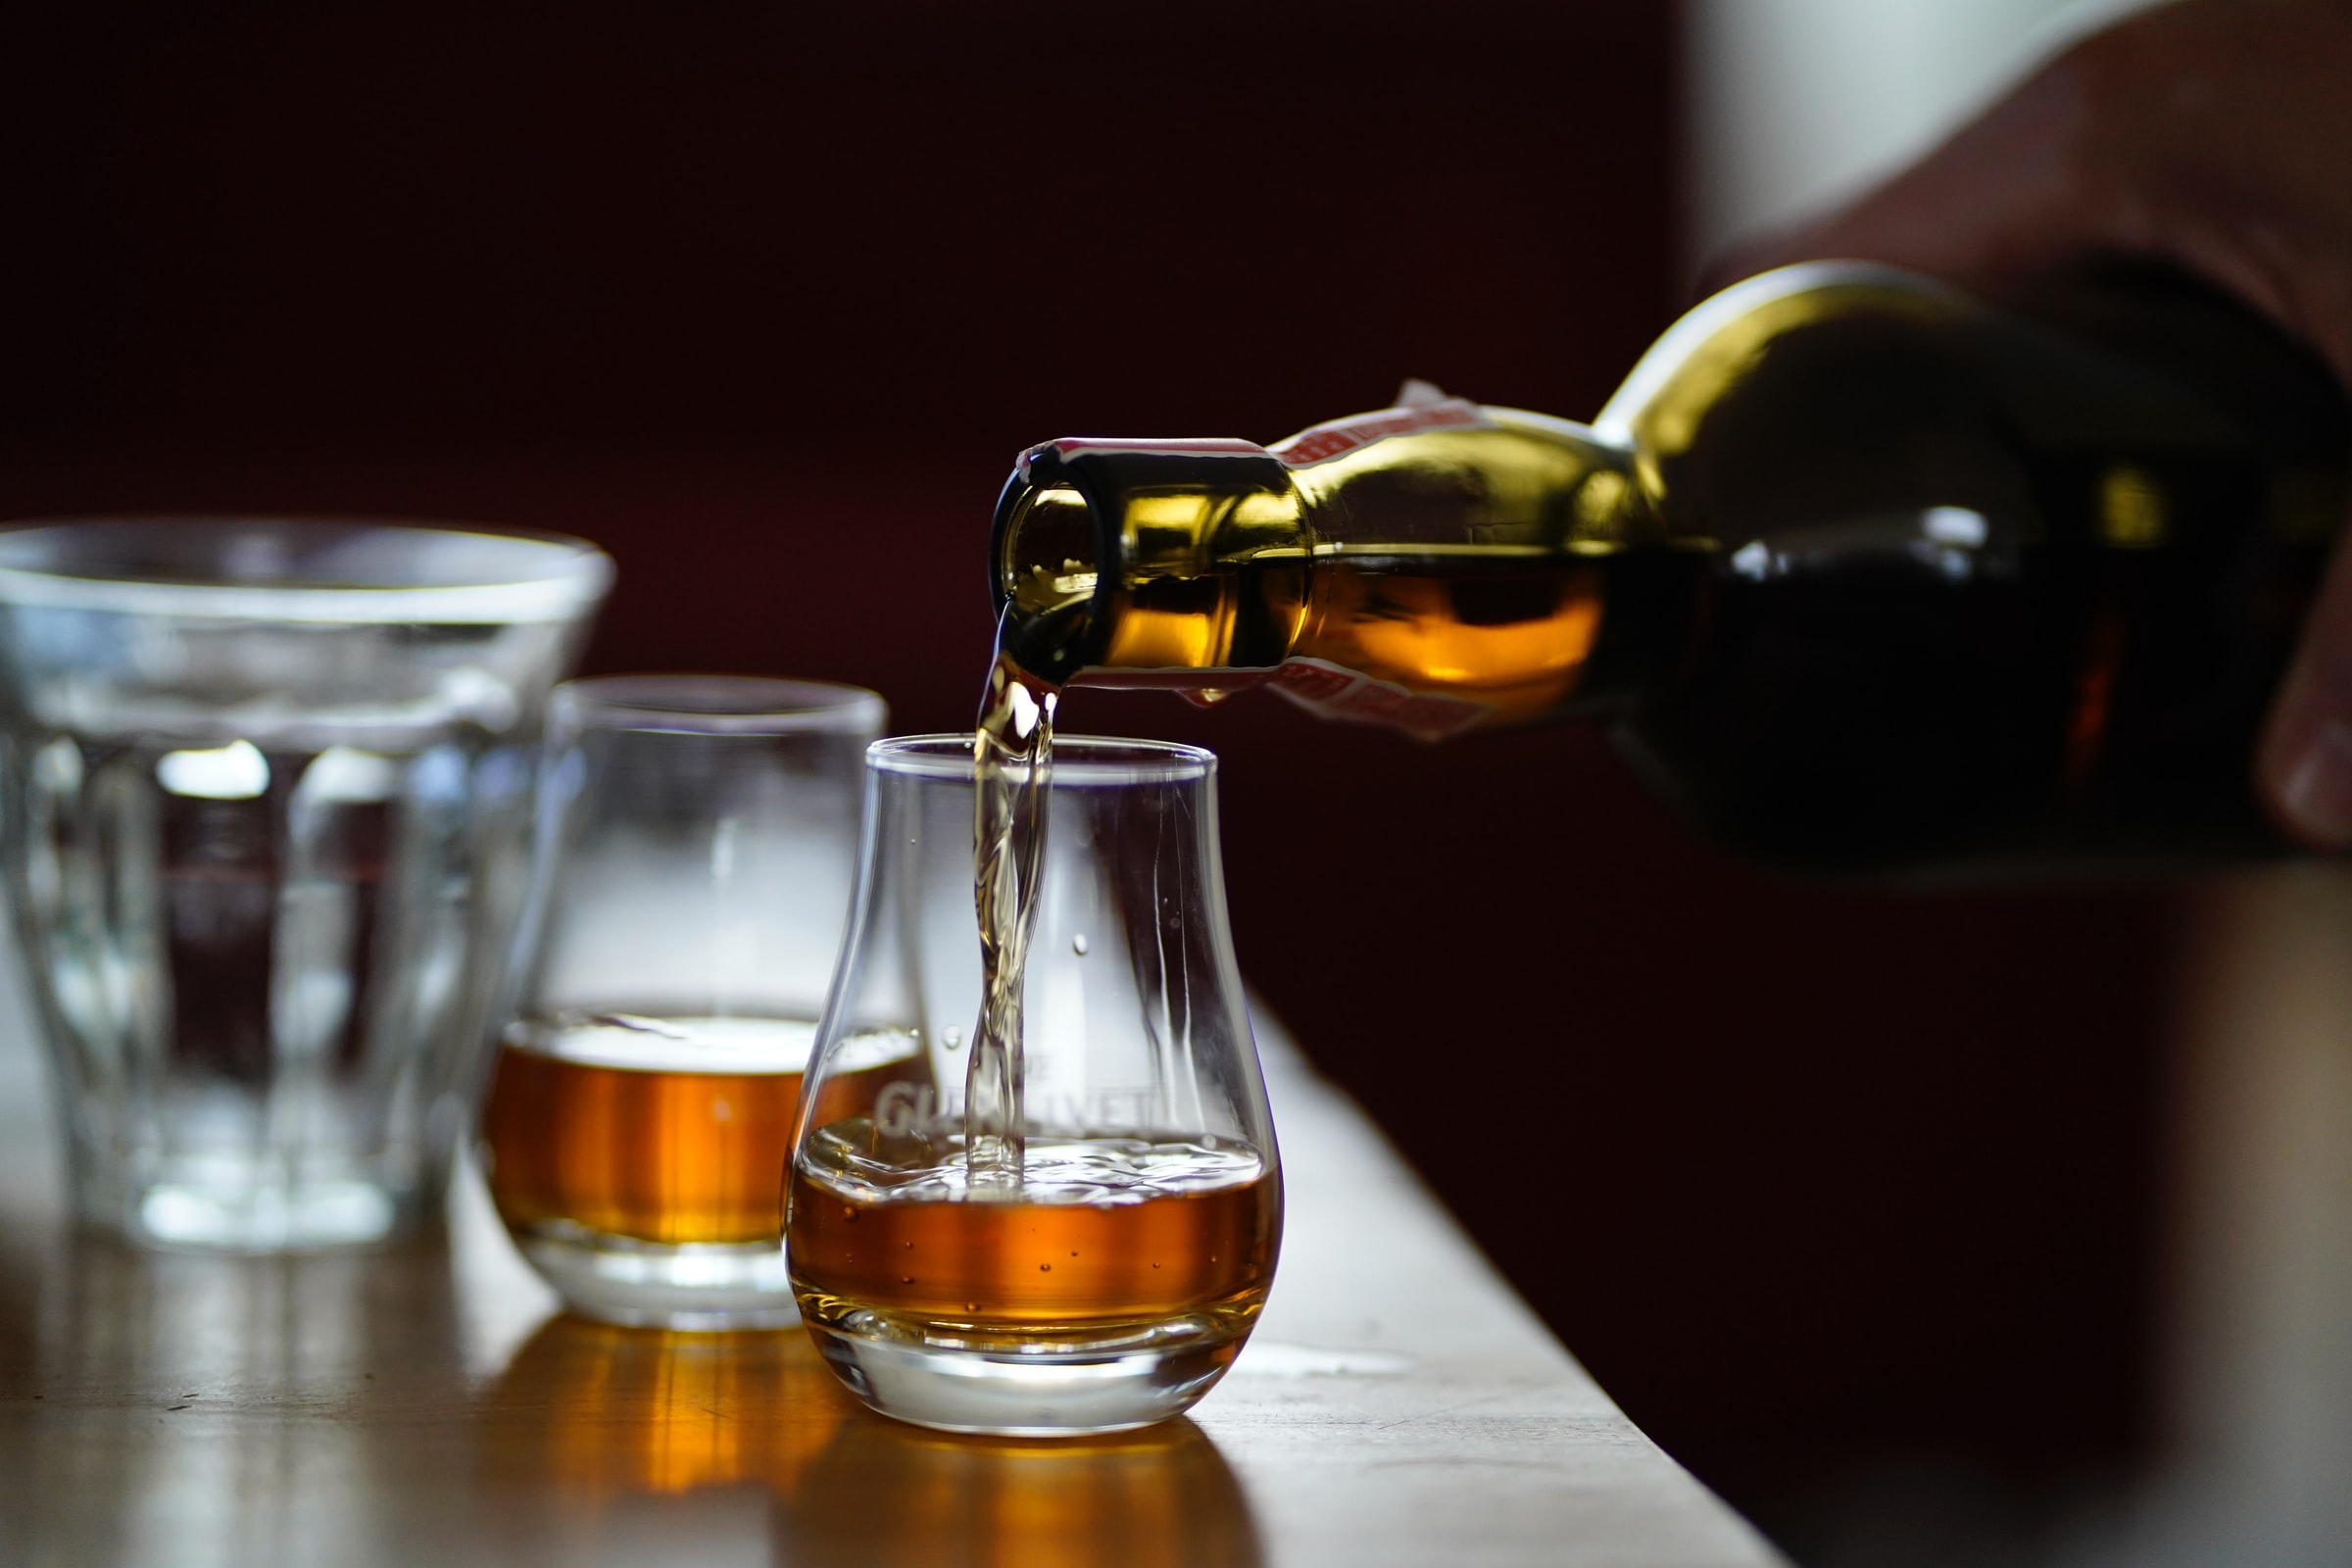 Changing Tastes: A Look At The Ever-Evolving Whisky Industry